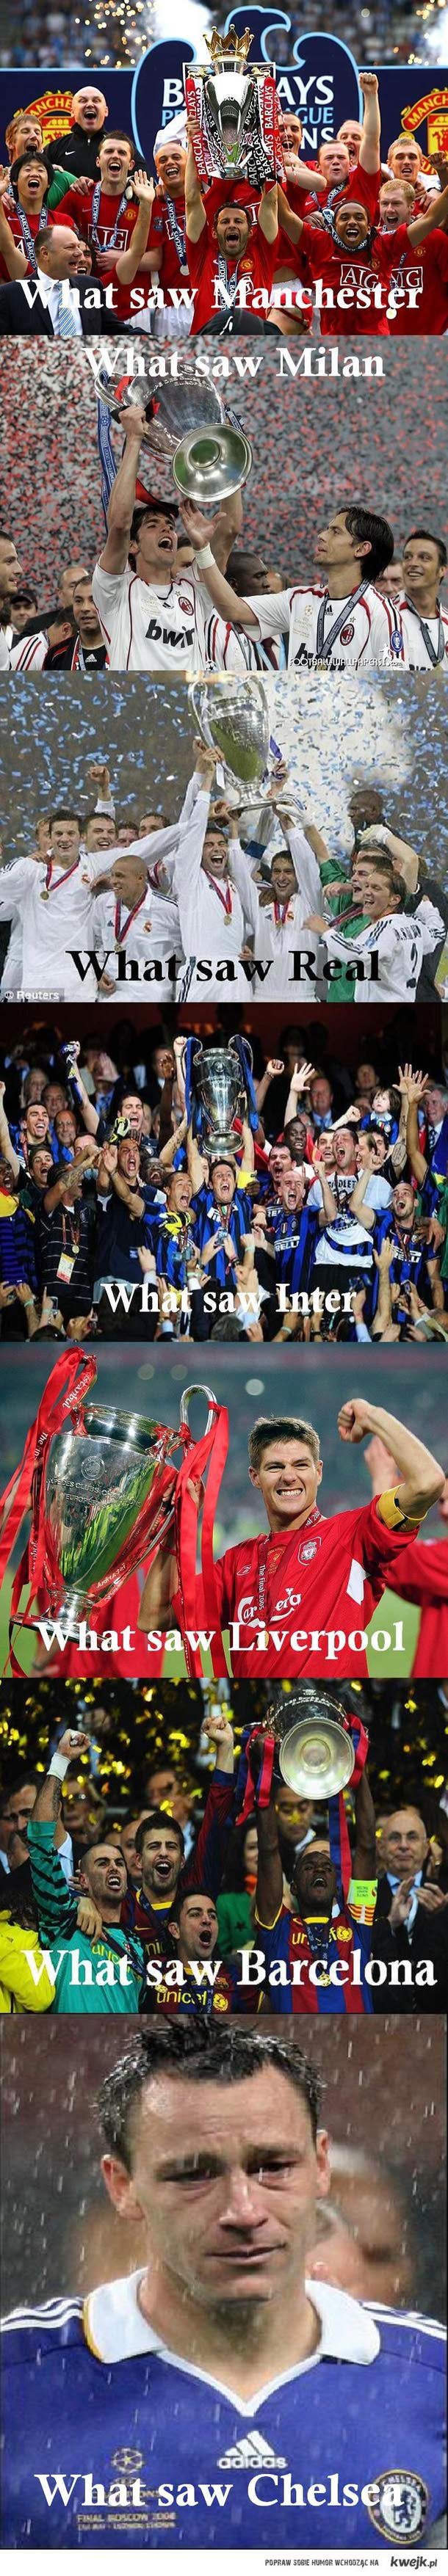 What saw Chelsea